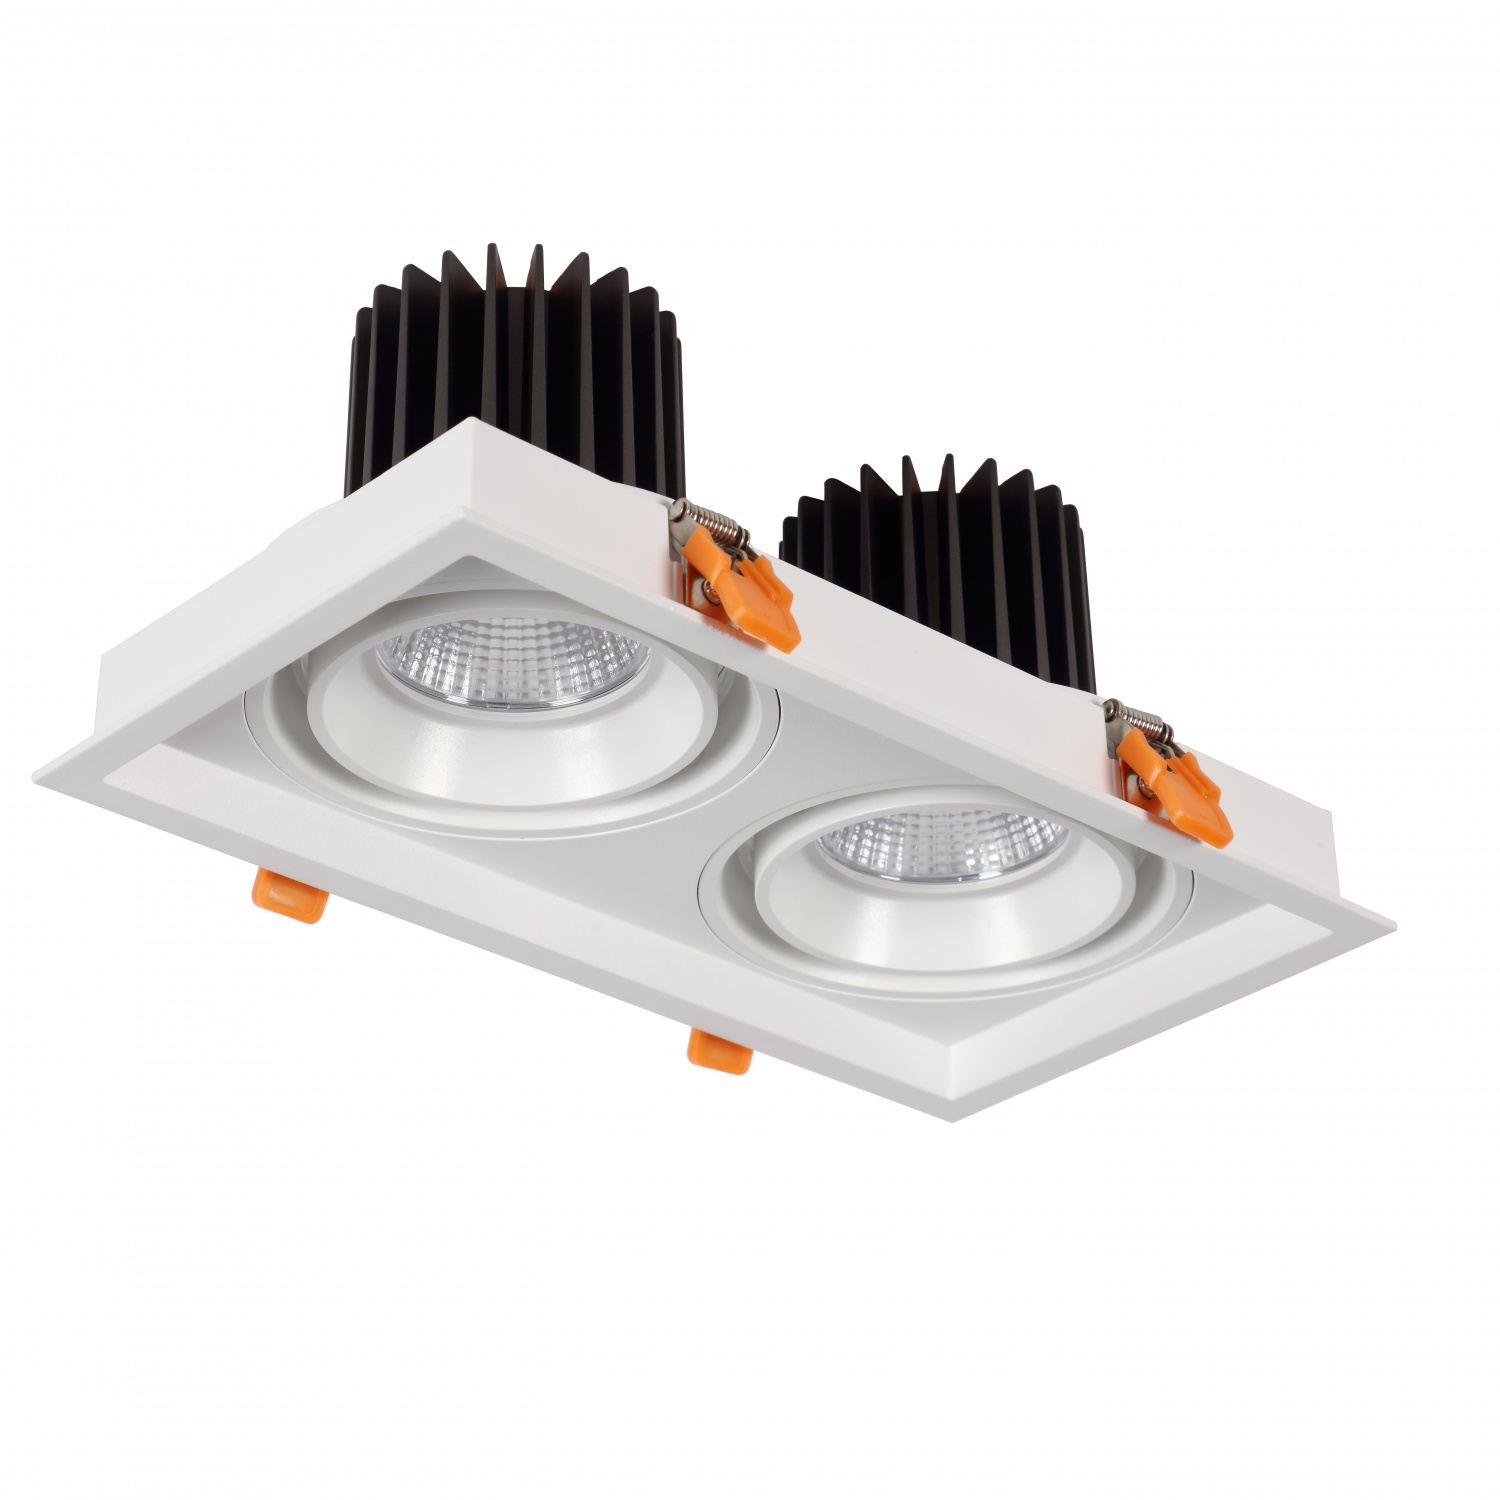 Dual Grille COB Downlight